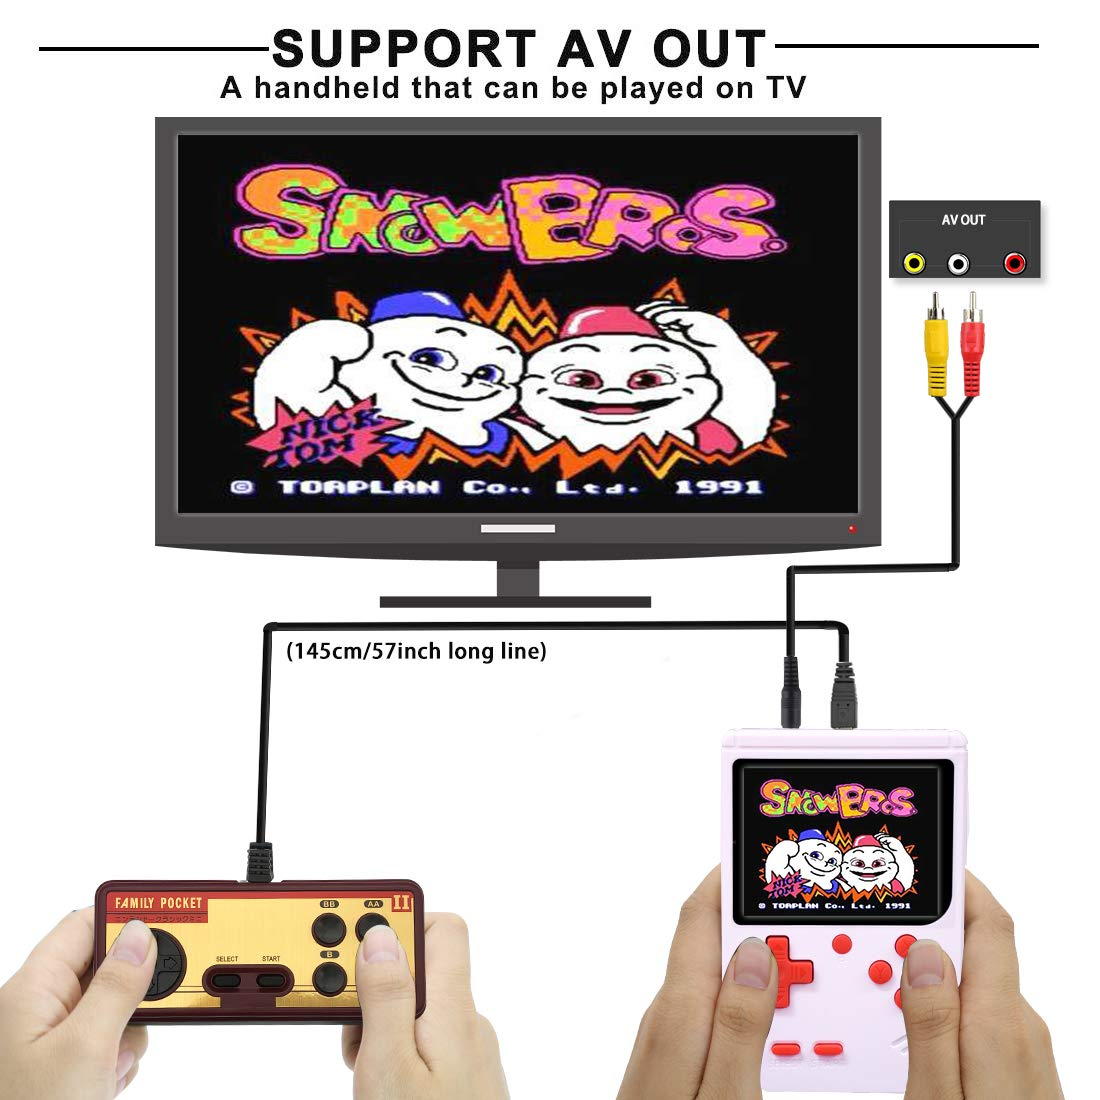 AKTOUGST Handheld Game Console, Retro Game Console 400 Classic Game FC System Video 3 Inch with Headphone Portable Mini Extra Joystick Controller Support TV 2 Player,Gift for Children Adult, (White) by AKTOUGST (Image #2)